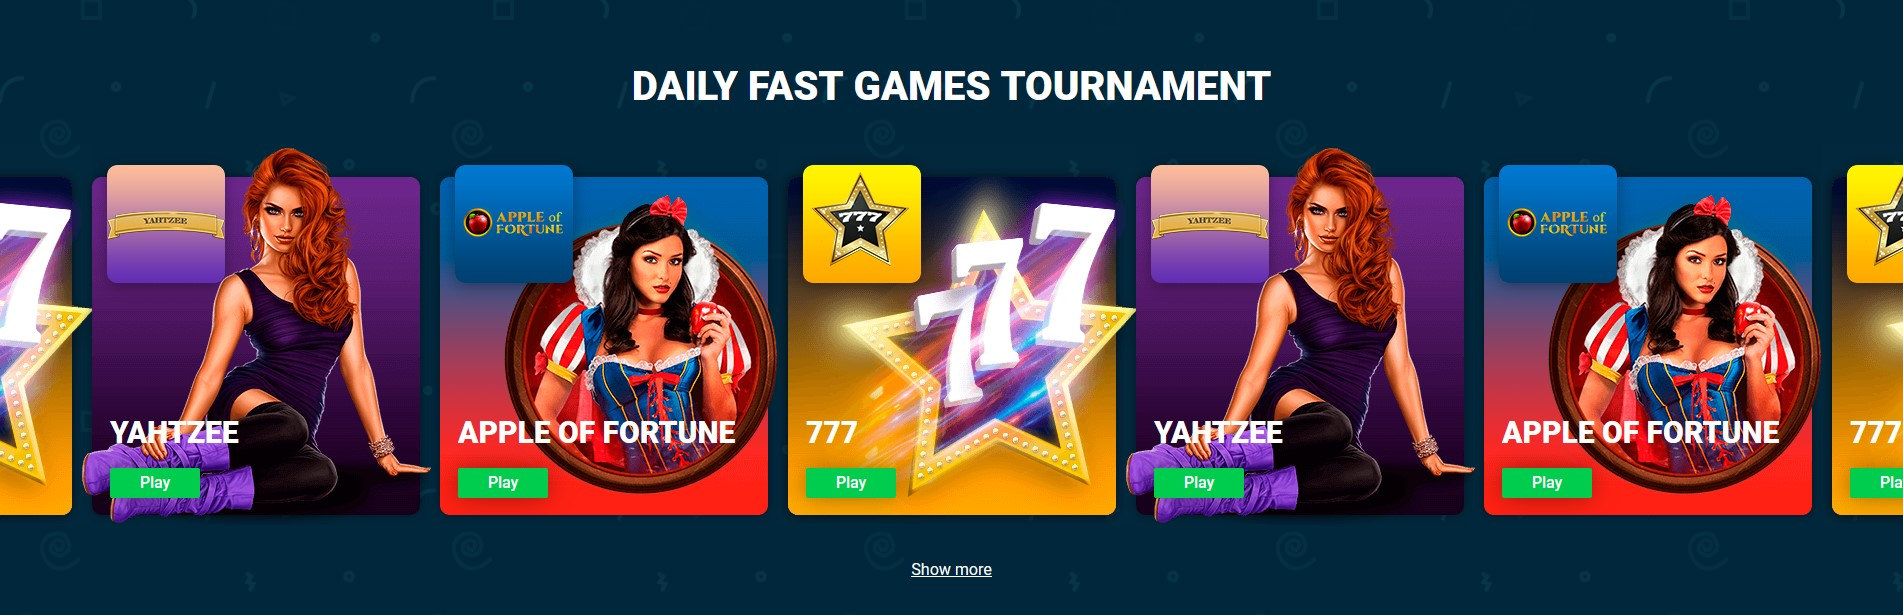 Daily Fast Games tournament